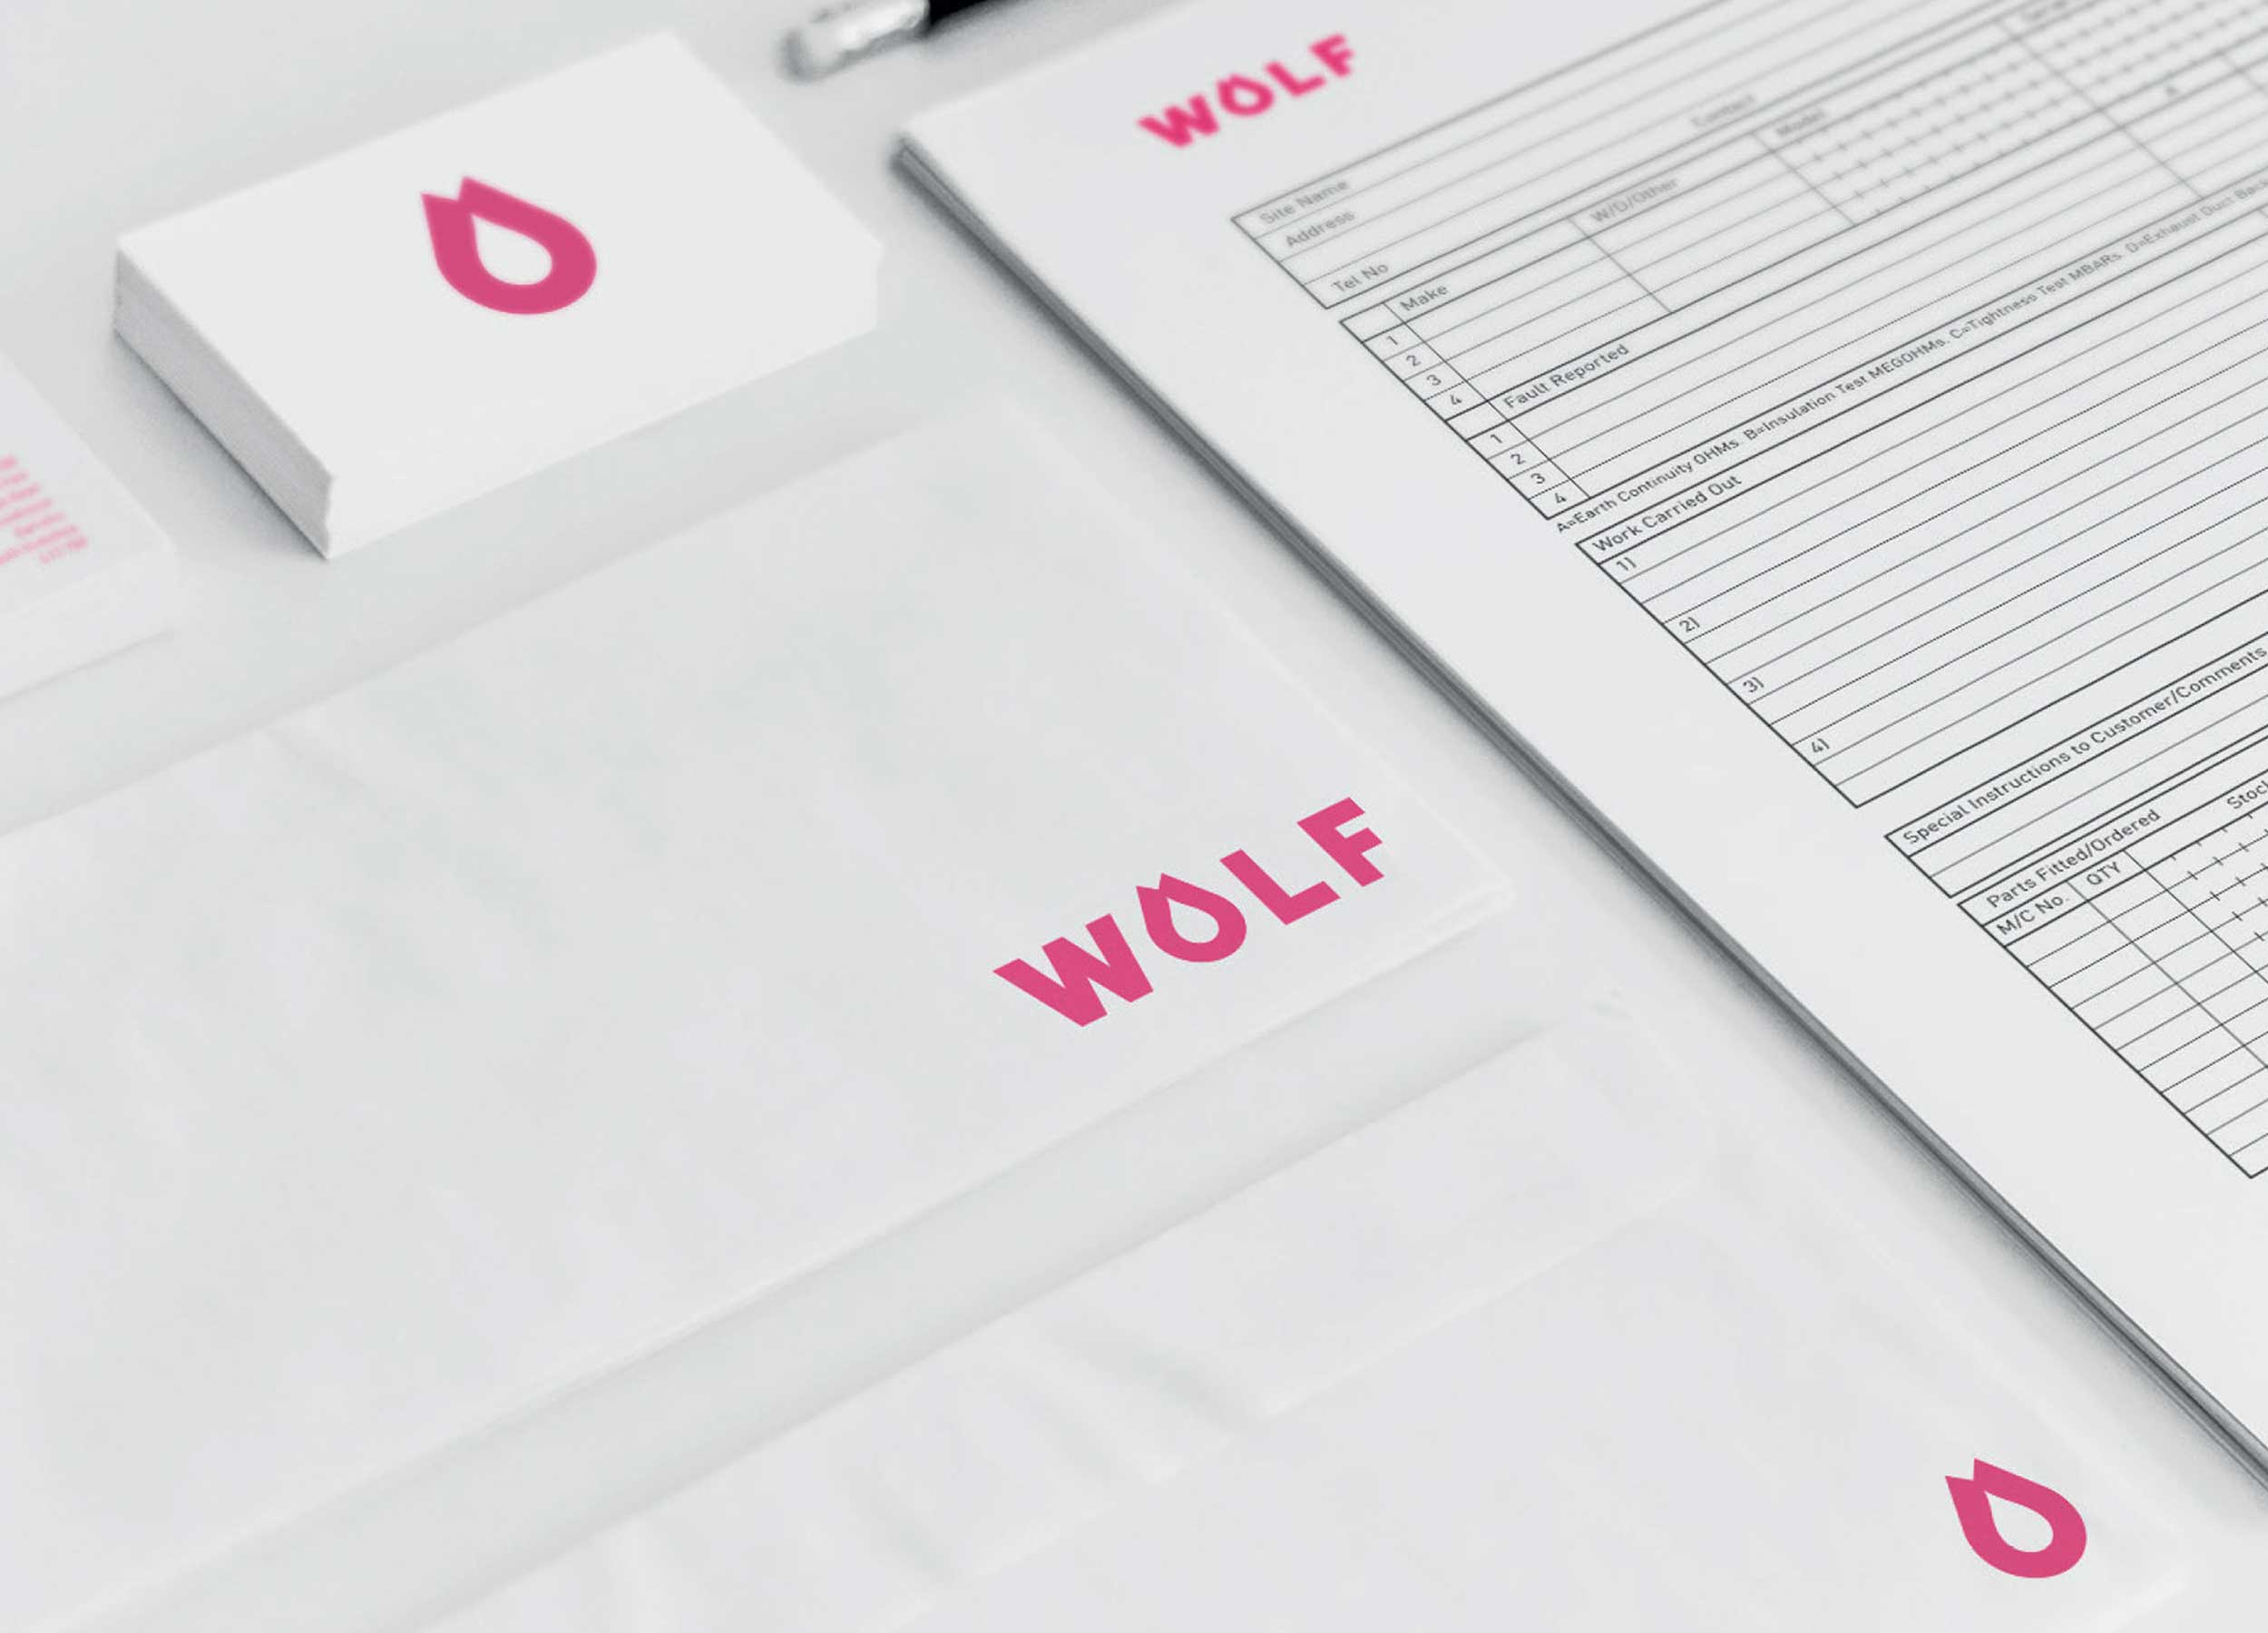 WOLF LAUNDRY - BRANDING, IDENTITY AND MARKETING CAMPAIGN